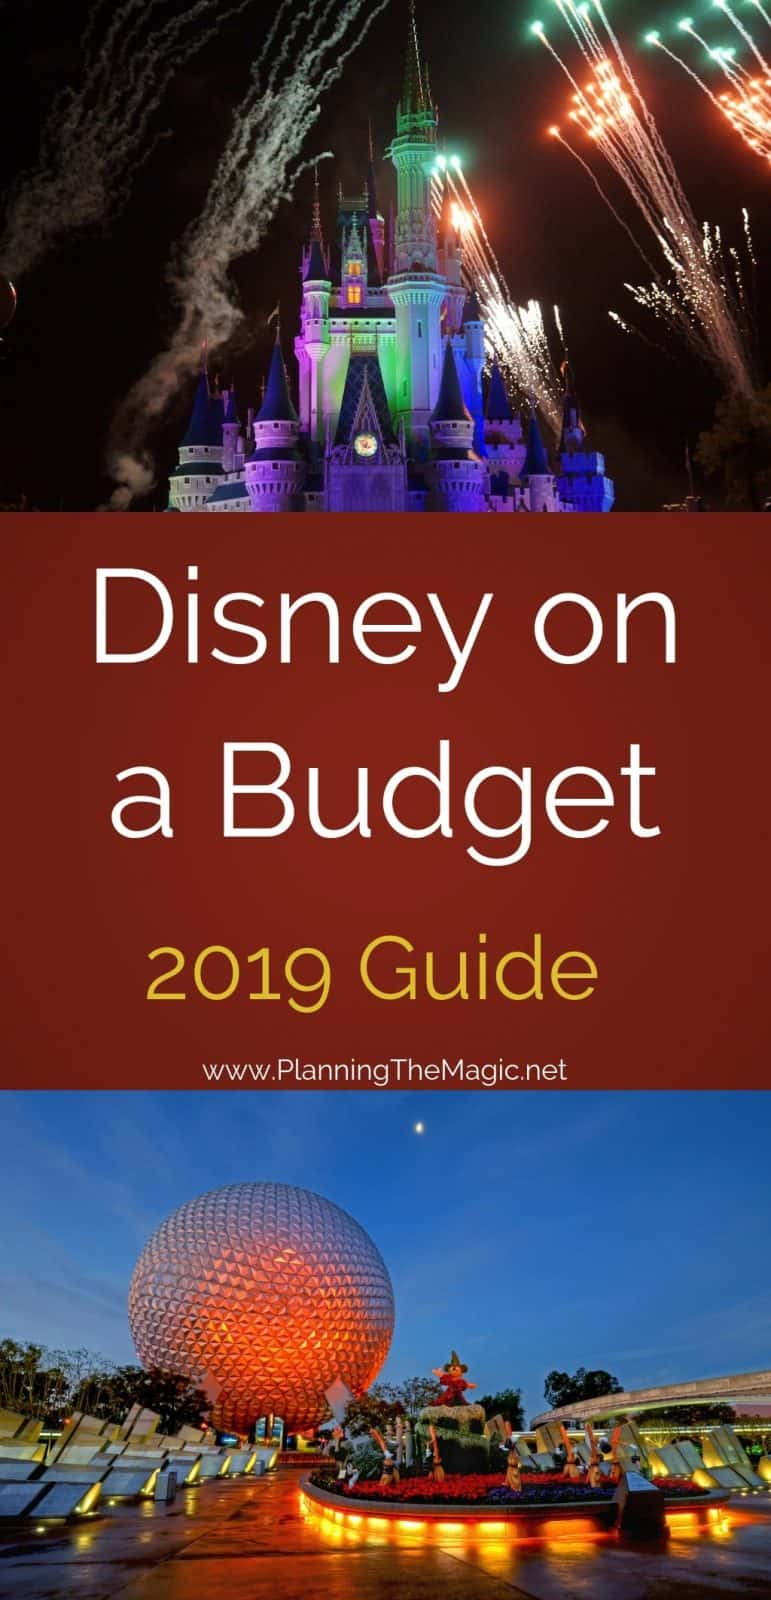 Disney on a Budget 2019 - the Ultimate Guide - Planning The Magic